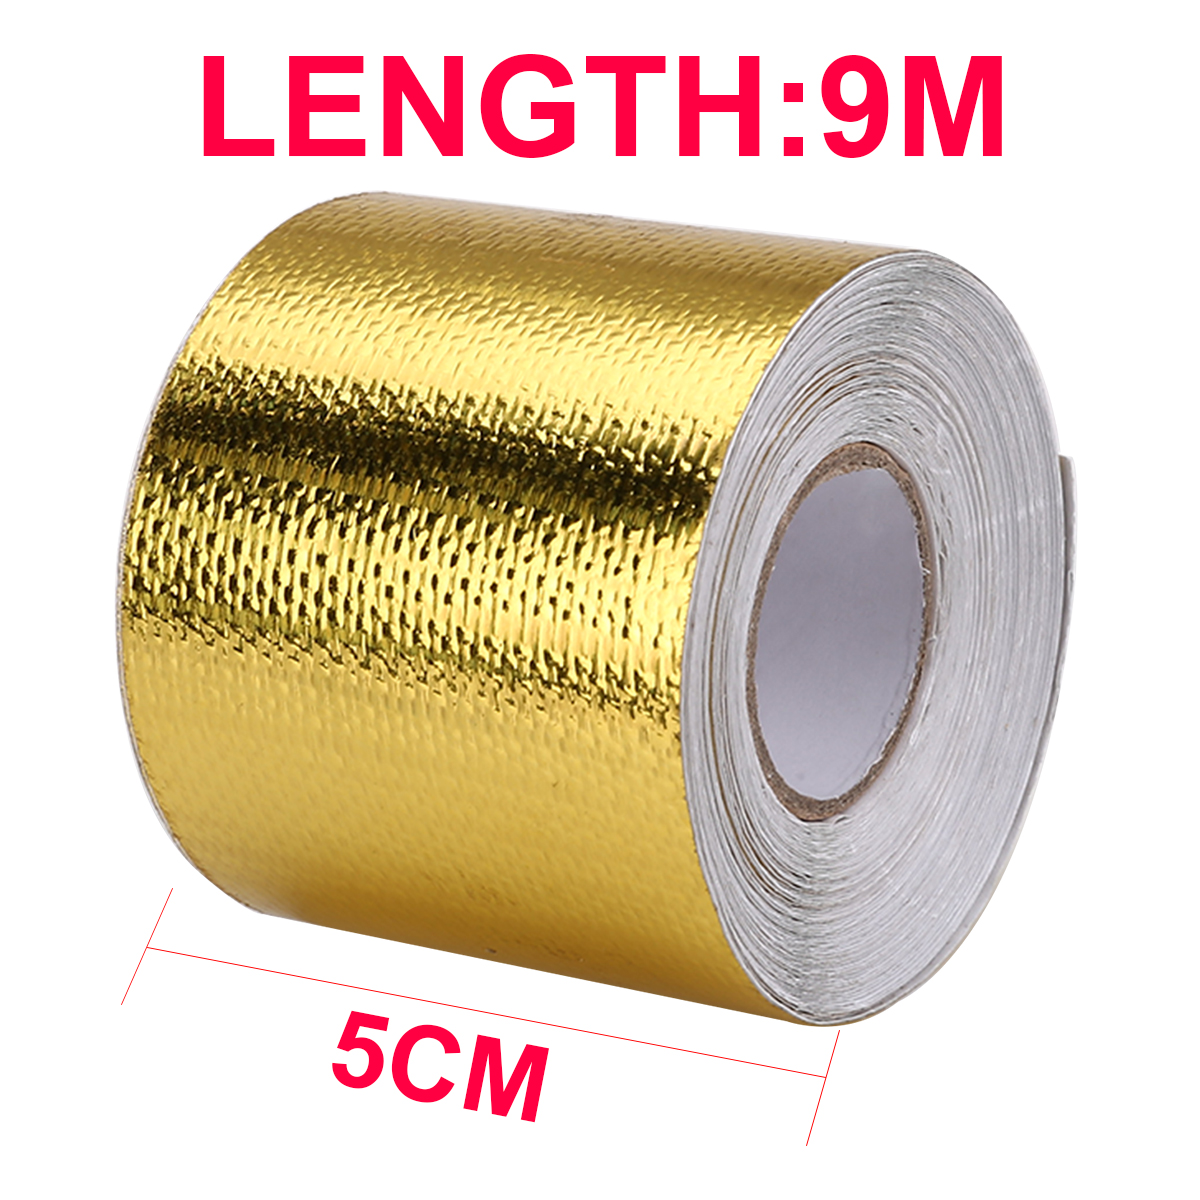 US $9 45 30% OFF Gold Motorcycles Exhaust Header Tape Heat Wrap Oil Pipe  Steam Pipe Insulation Roll Tape Protector Fiberglass 5cm x 9m Mayitr-in